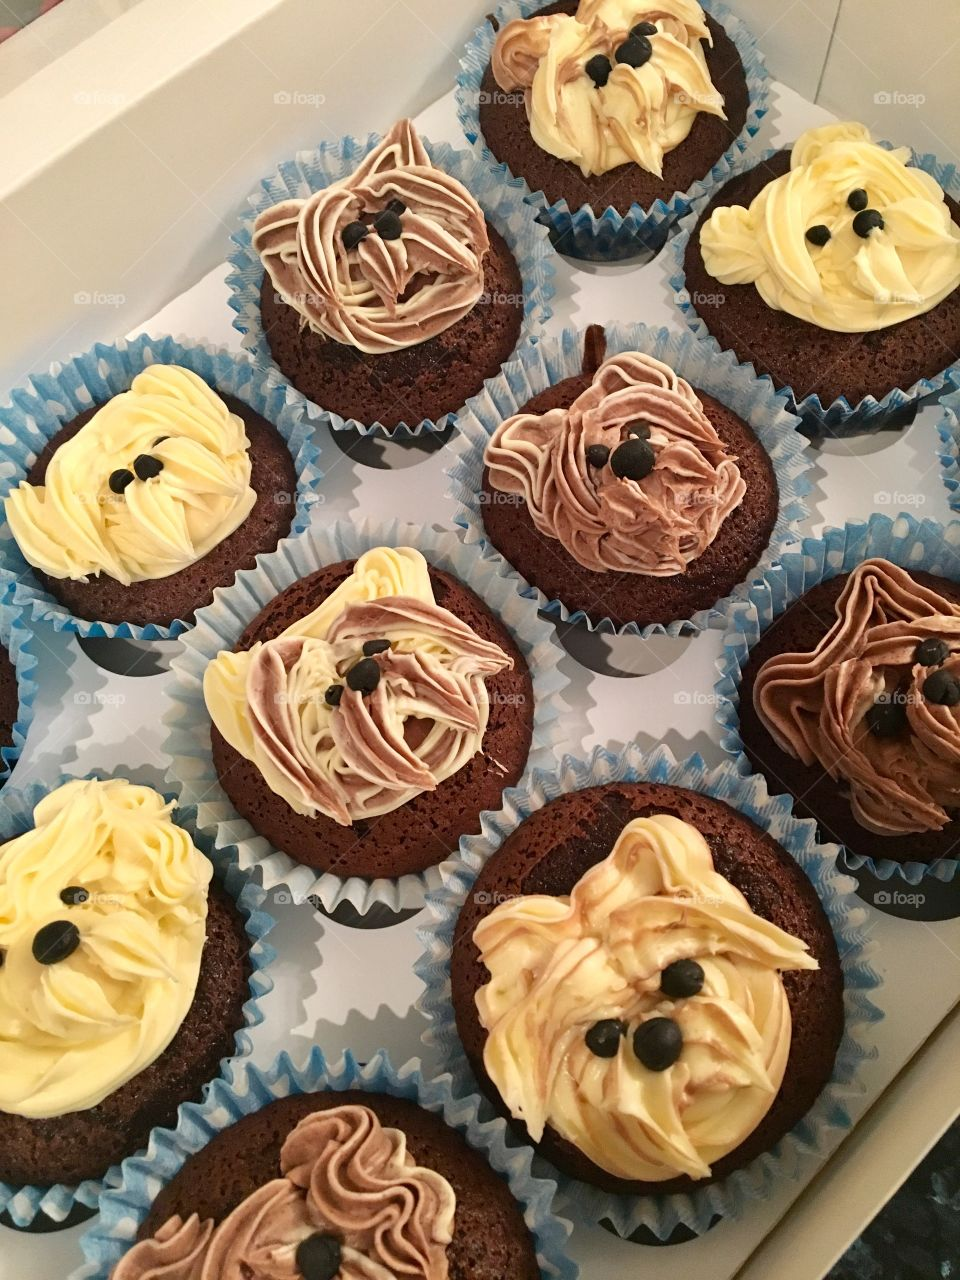 Doggy cupcakes- made by me